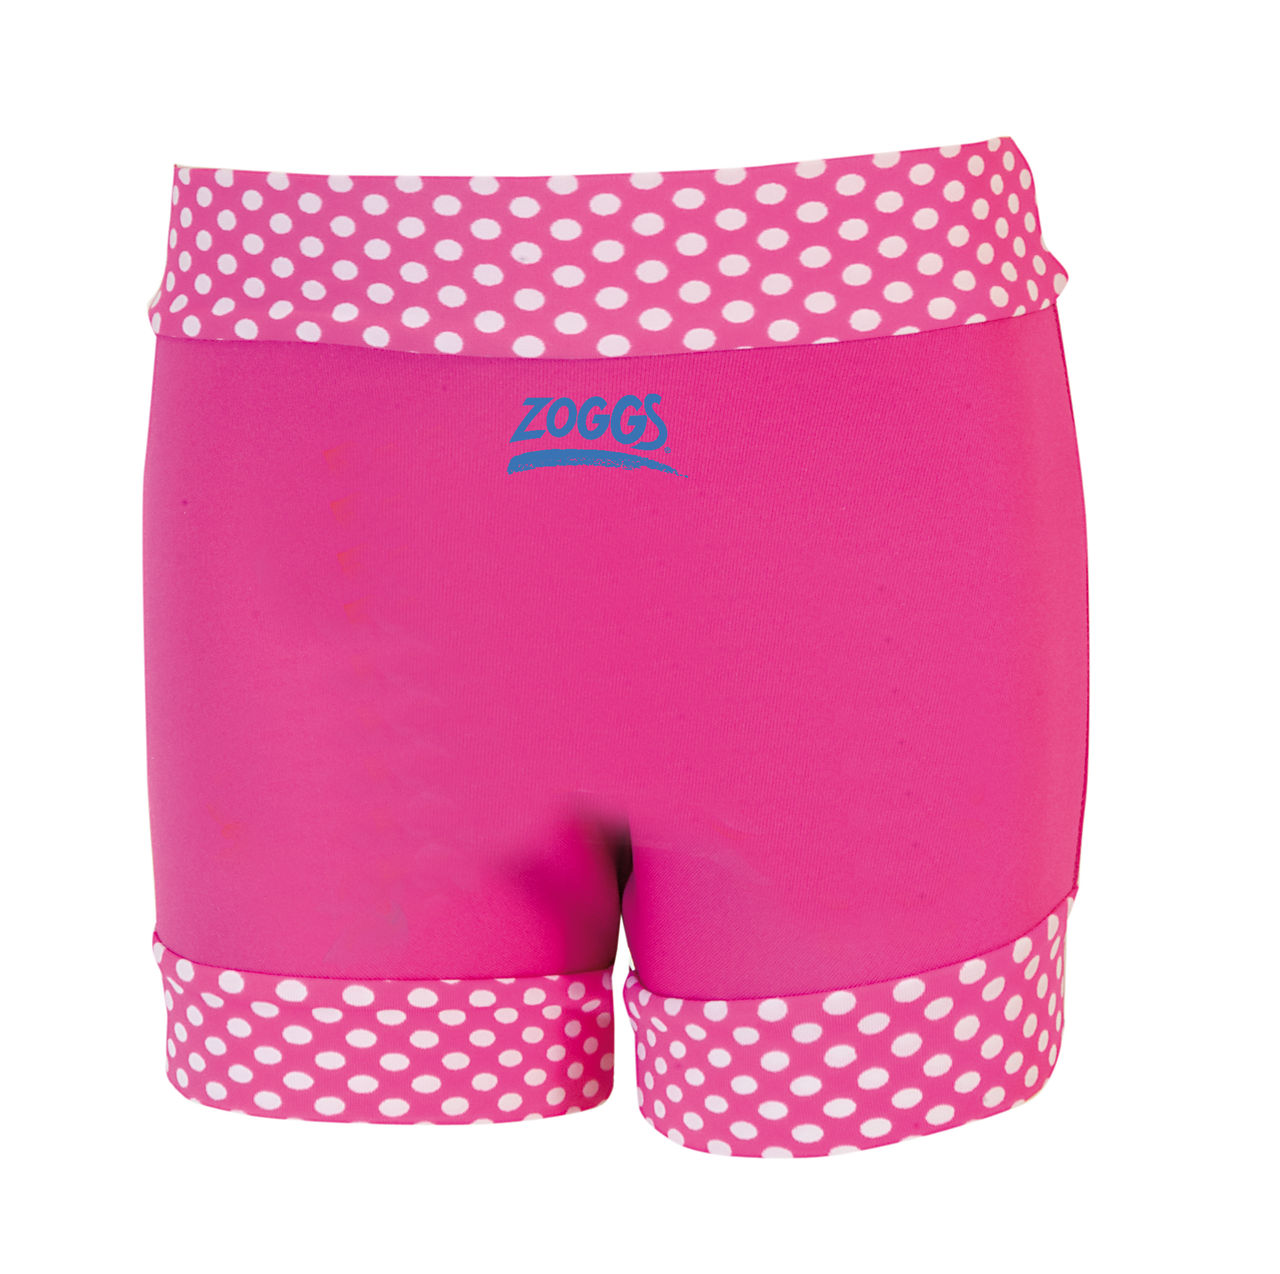 Zoggs Swimsure Nappy (Pink & Blue)